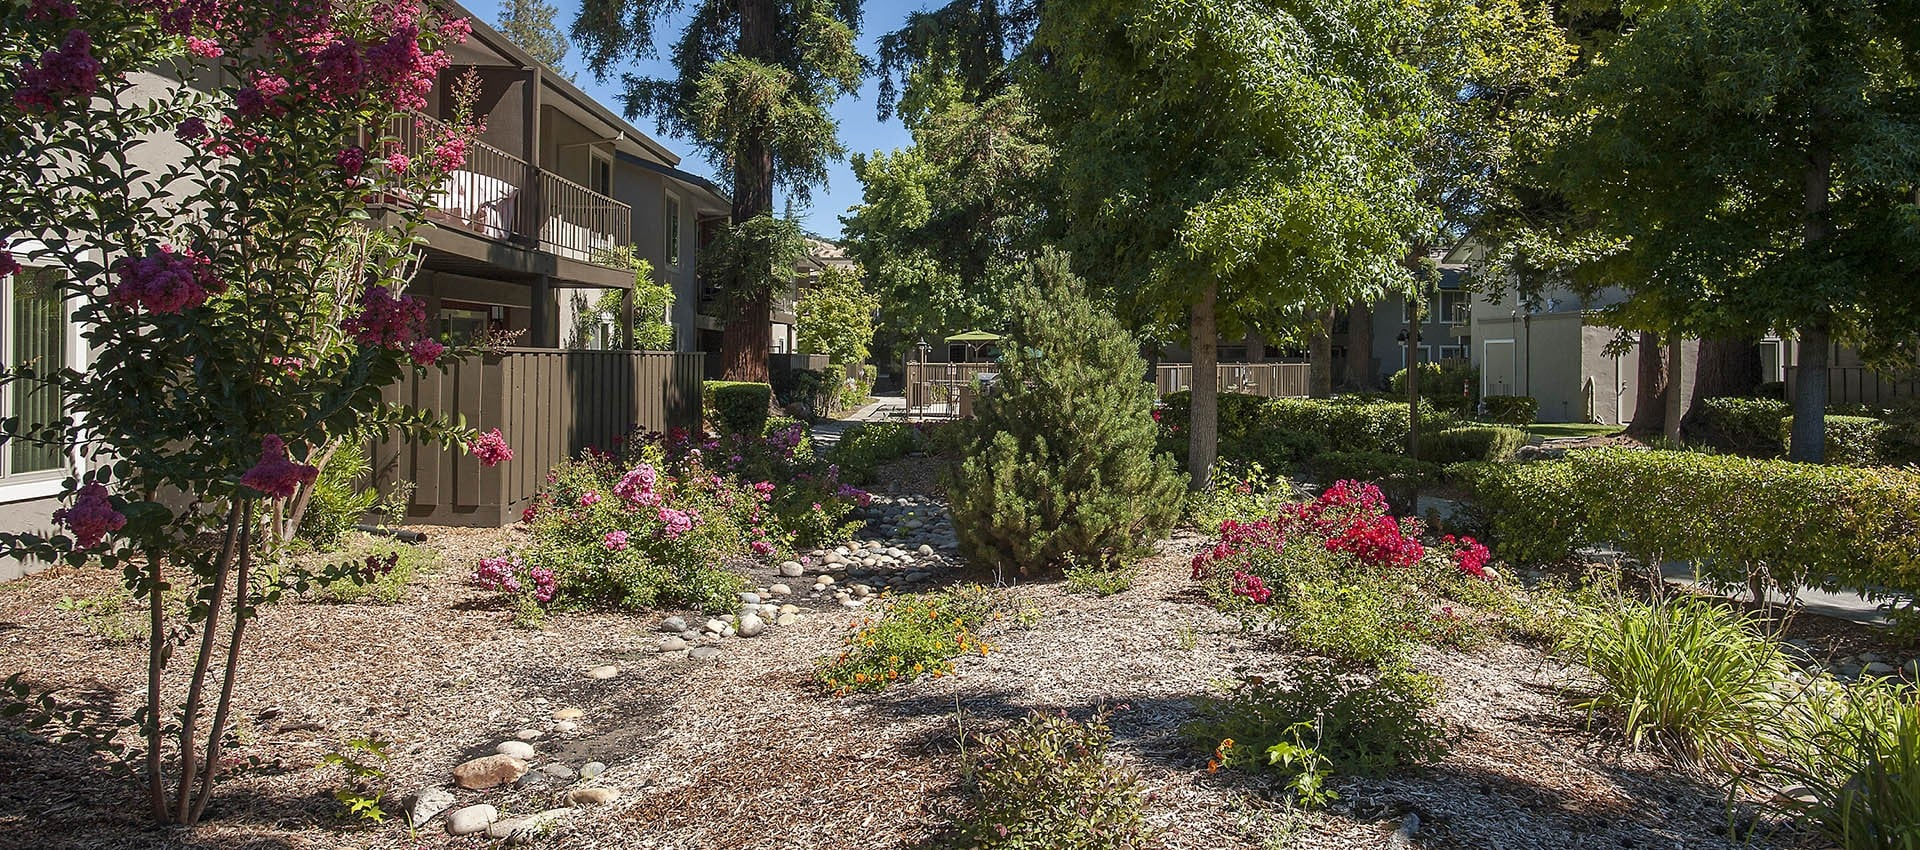 Landscaping Near Private Patio at Flora Condominium Rentals in Walnut Creek, California